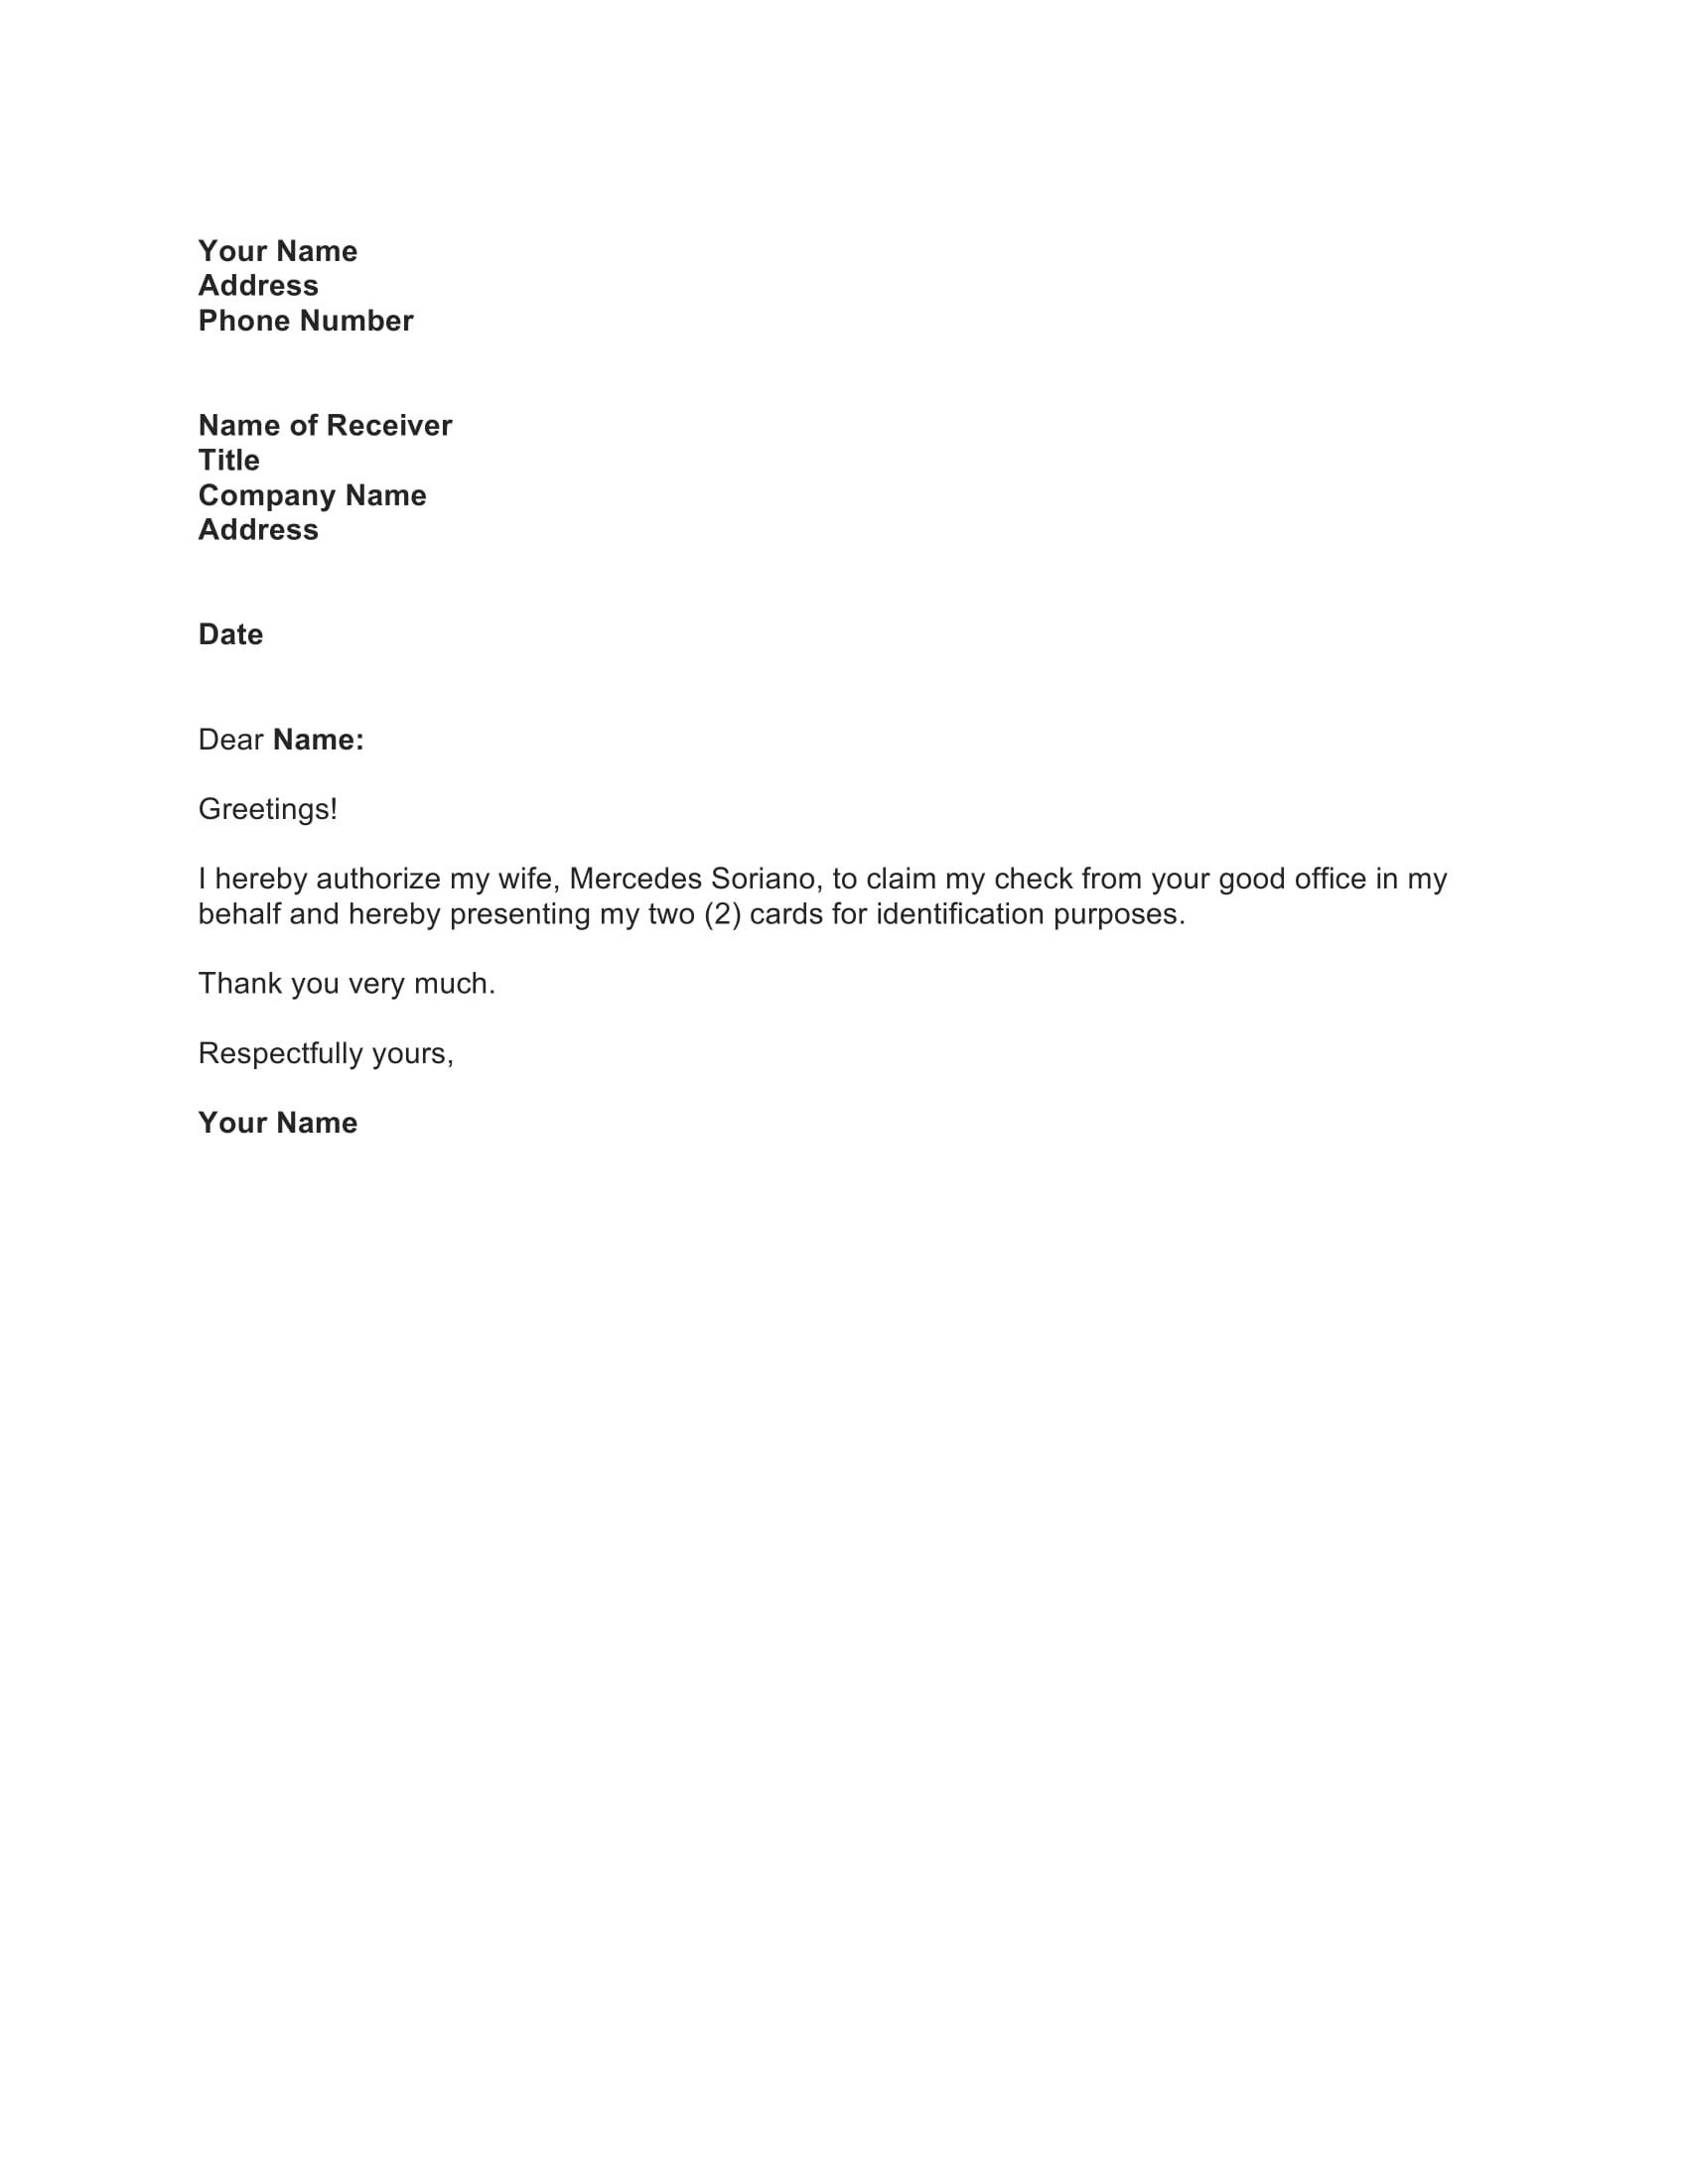 Pin by Waldwert Site on Resume Formats | Letters for kids, Letter